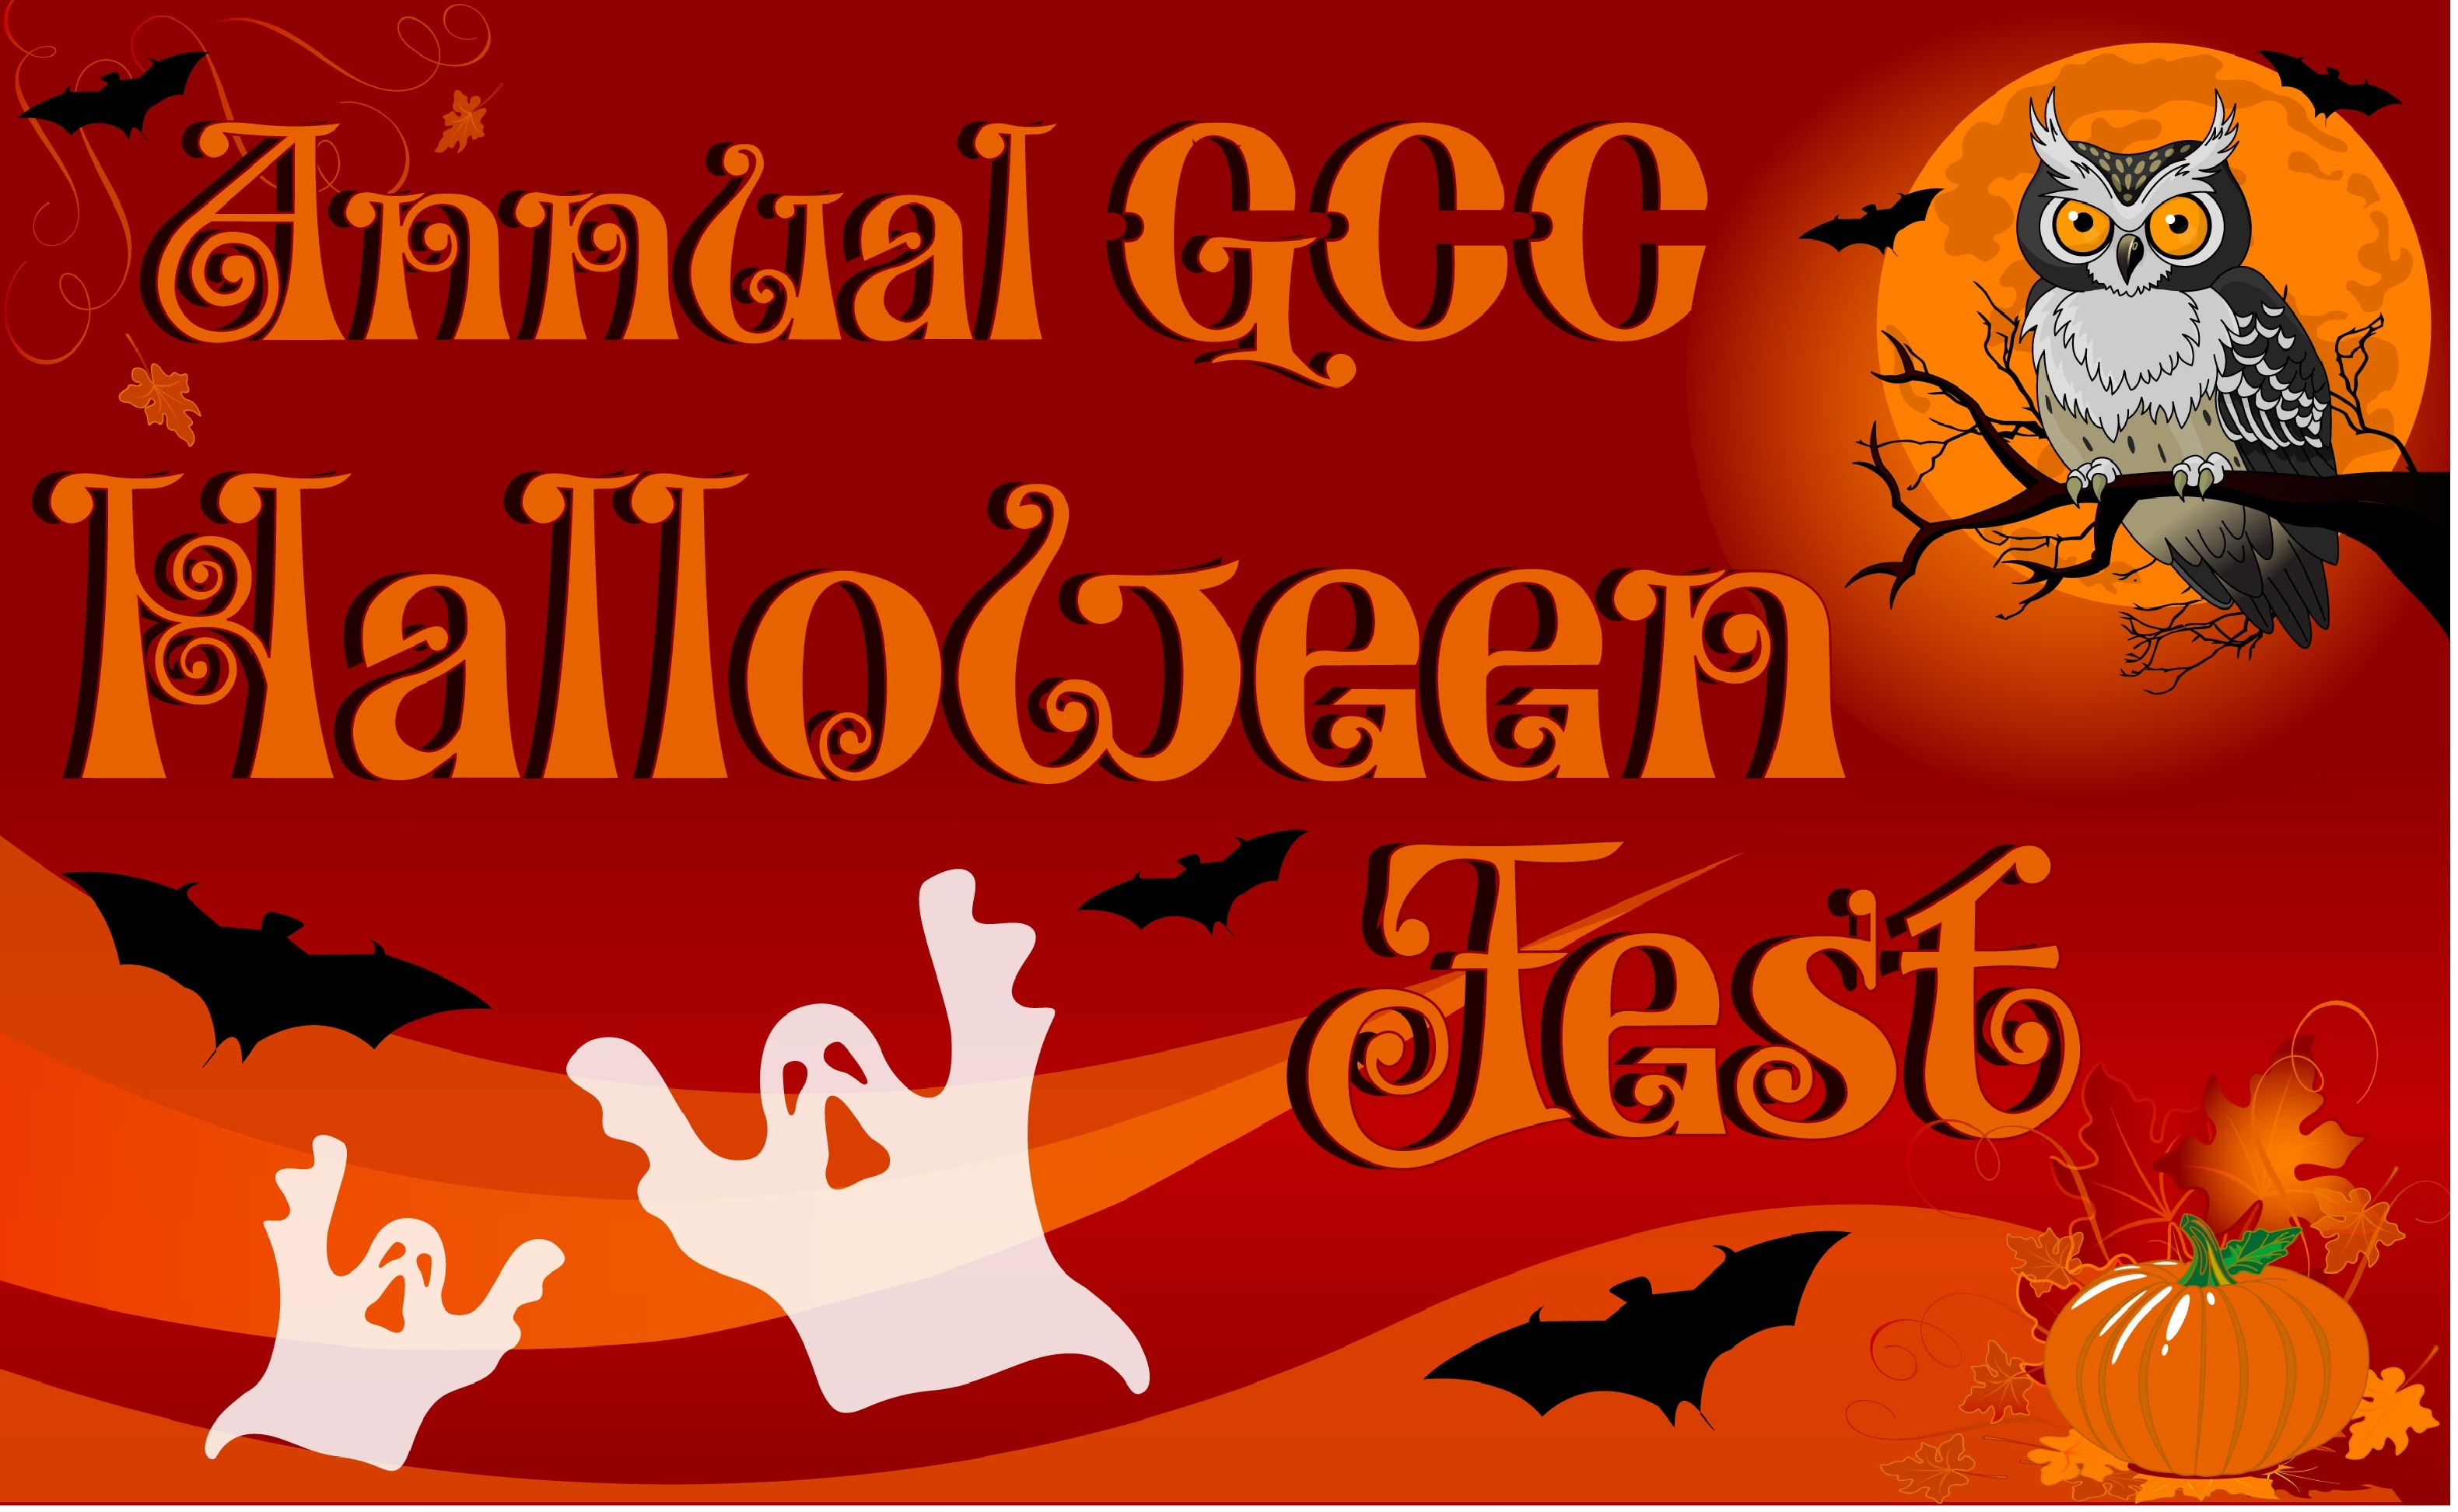 grimes trick or treat night is october 30 2018 from 6 8pm normally on october 31 from 6 8pm unless it falls on a sunday or wednesday or home football